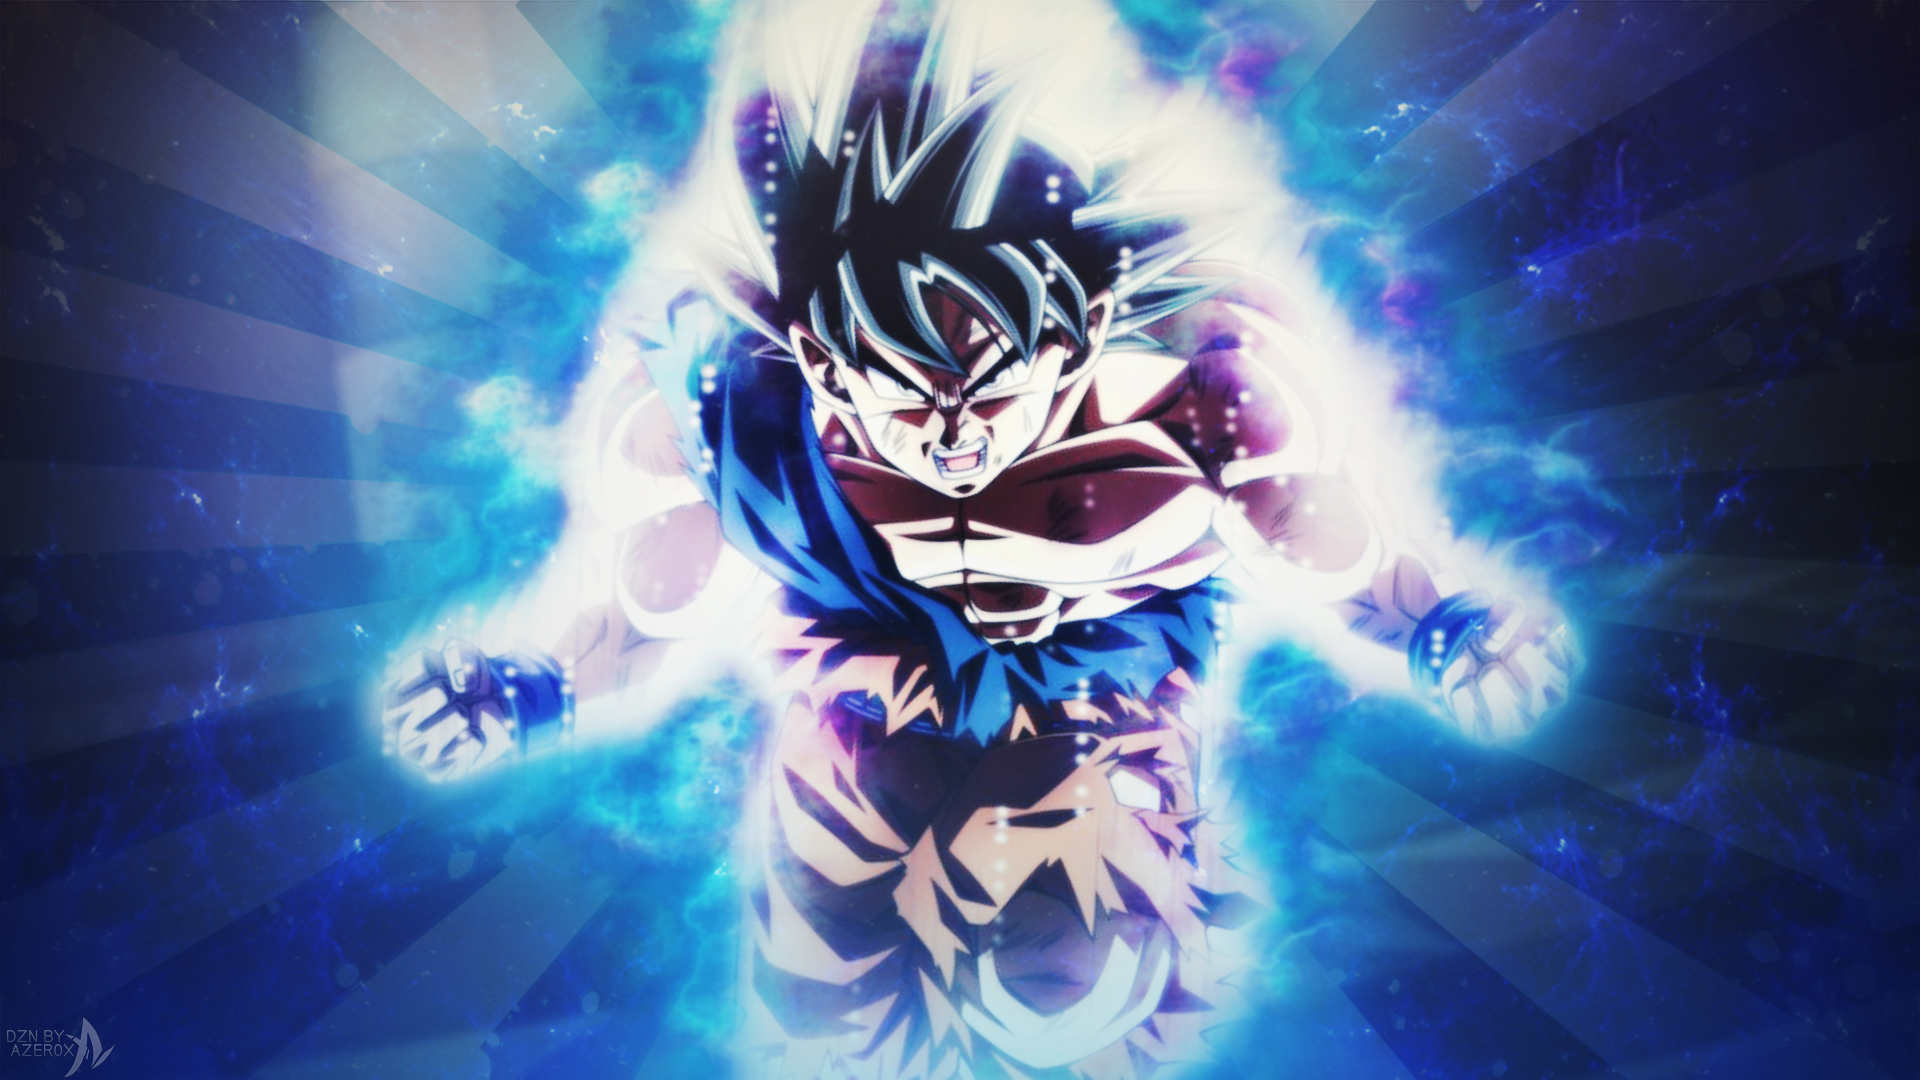 Son Goku Wallpapers For Iphone Goku Ultra Instinct Wallpaper Goku Wallpaper Goku Ultra Instinct